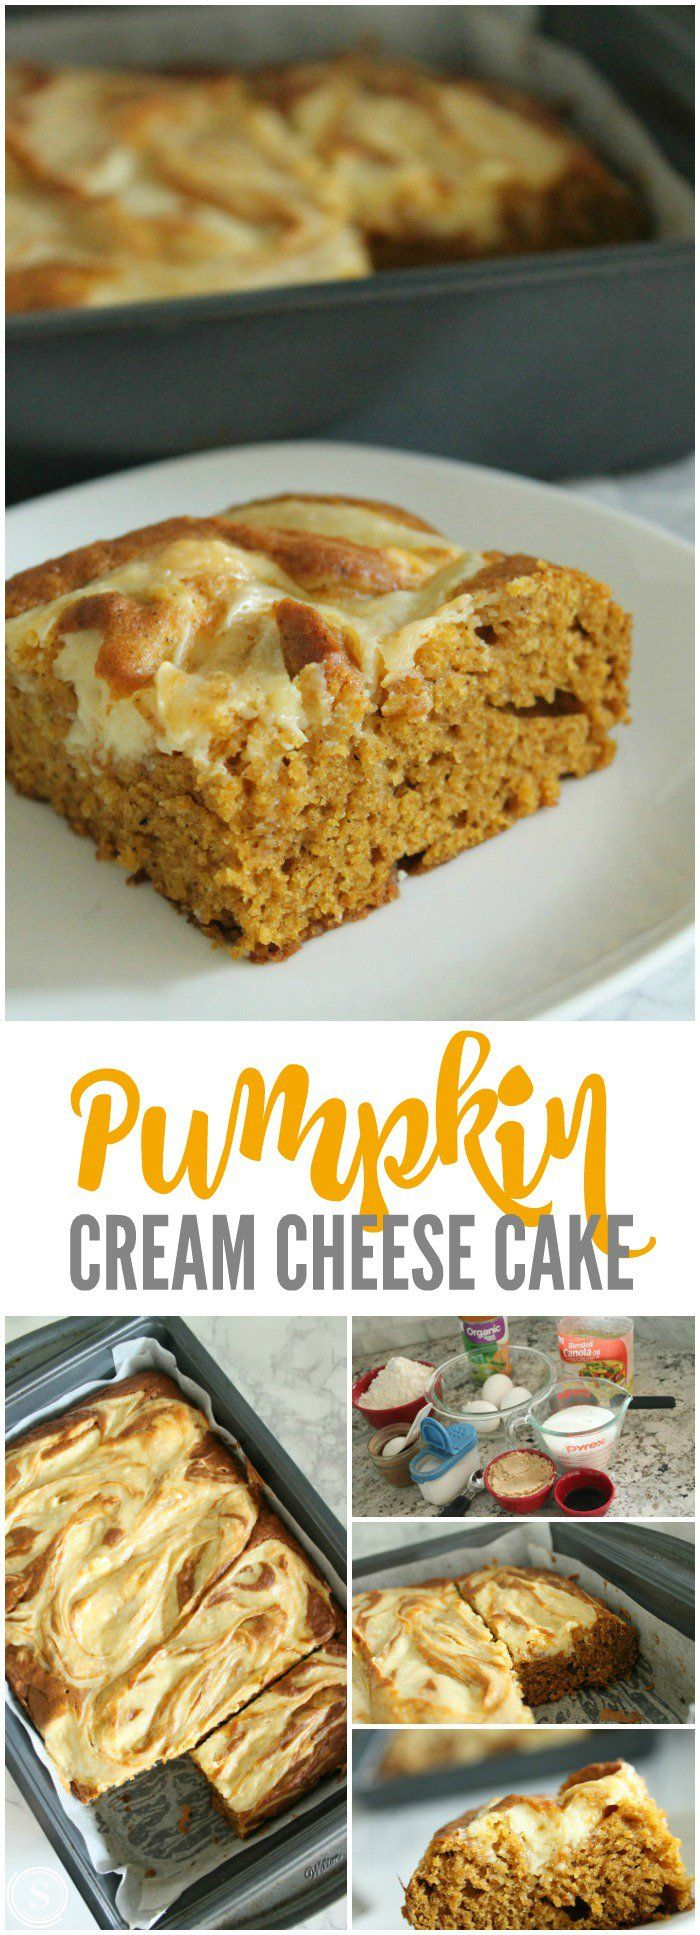 Pumpkin Cream Cheese Cake! Easy Dessert Recipe for Fall and Thanksgiving! One of my NEW favorite Fall